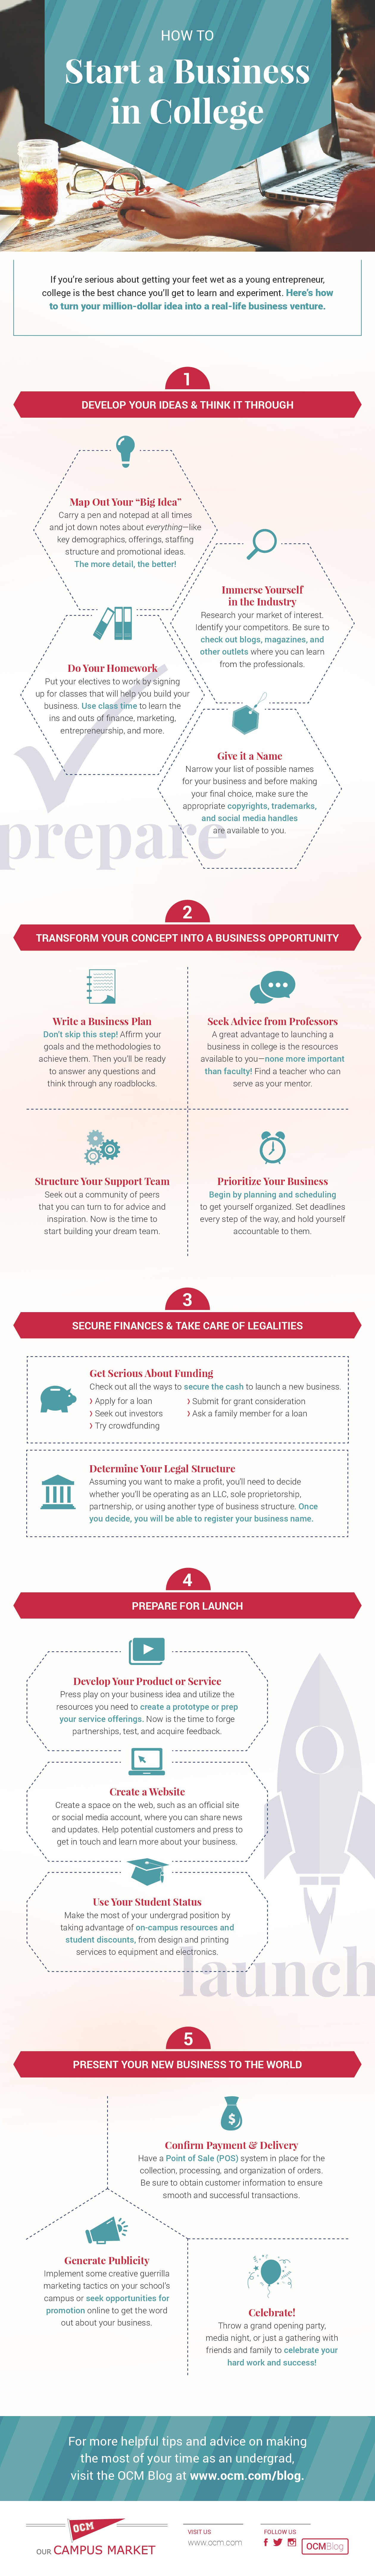 Start  A Business in College Infographic